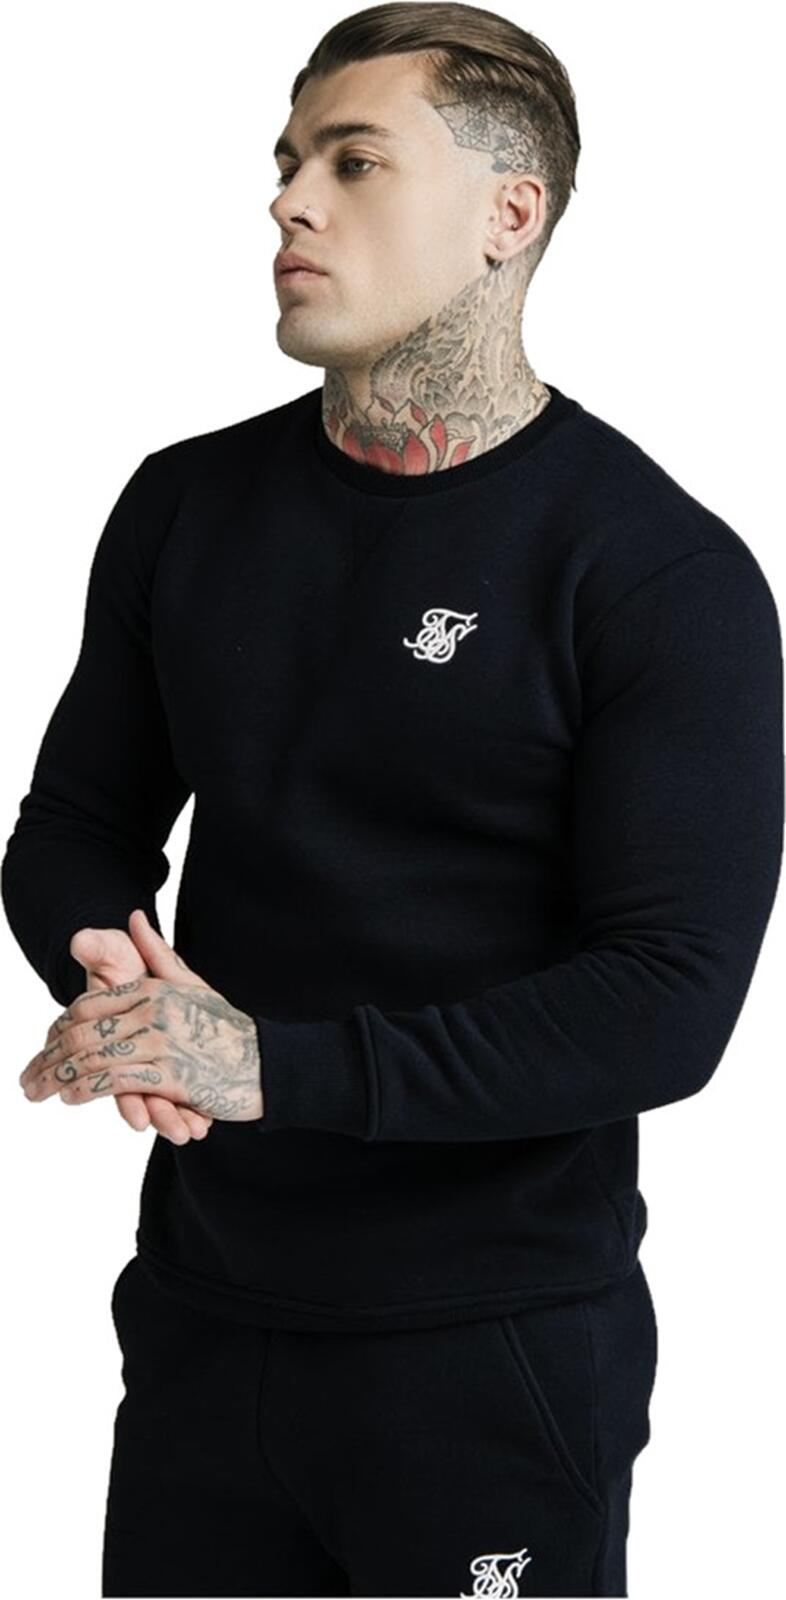 Sik Silk Sweatshirt Black